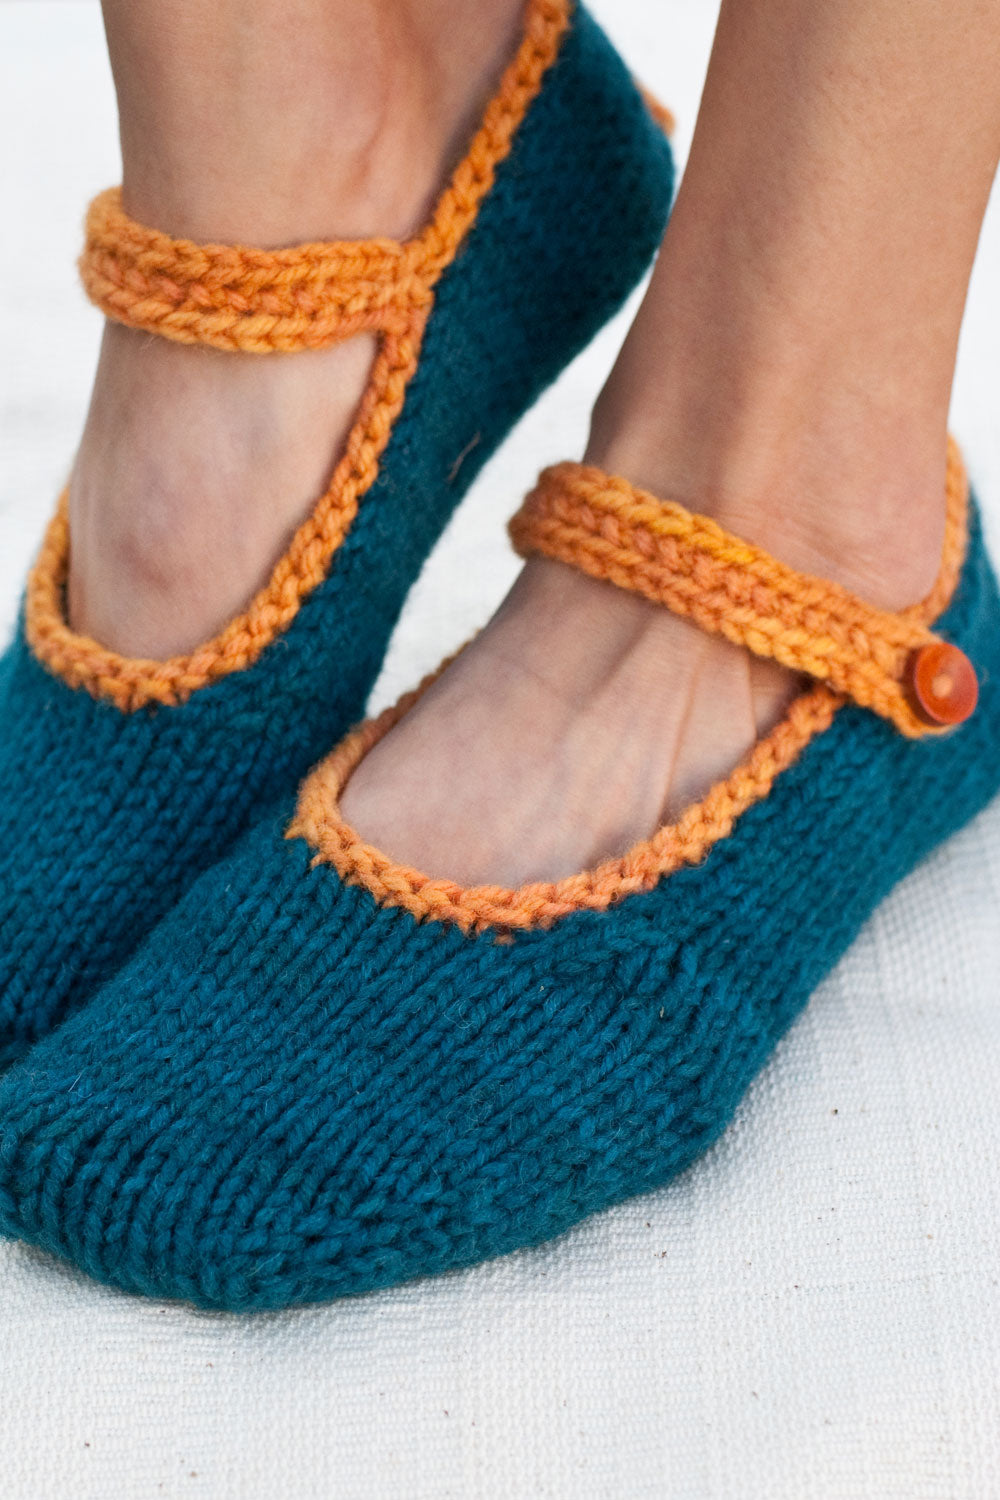 woman's feet wearing dark teal hand-knit slippers with bright orange trim, an ankle strap and wooden buttons